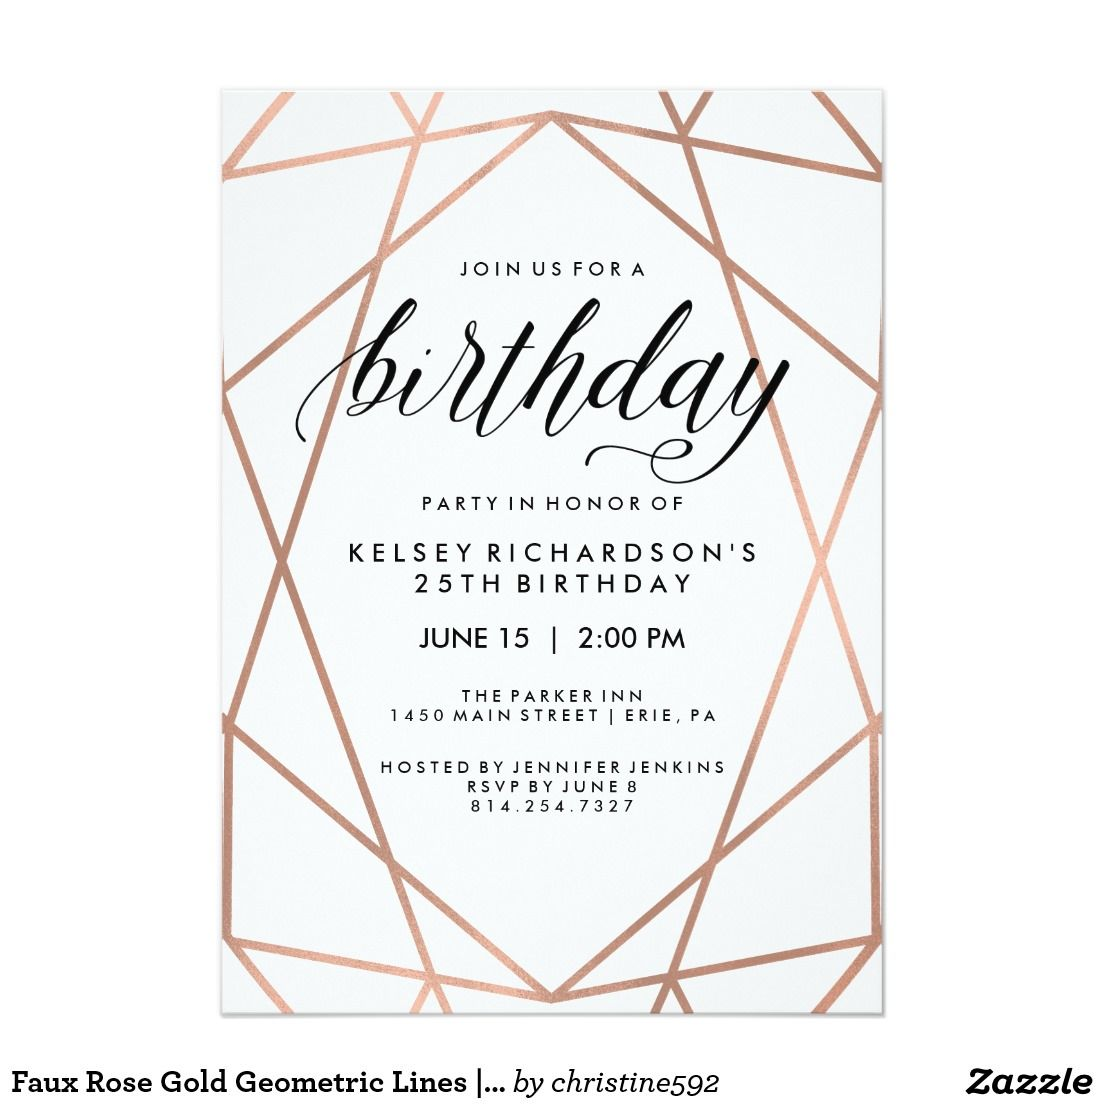 Faux rose gold geometric lines birthday party invitation http faux rose gold geometric lines birthday party invitation httpdeal stopboris Image collections